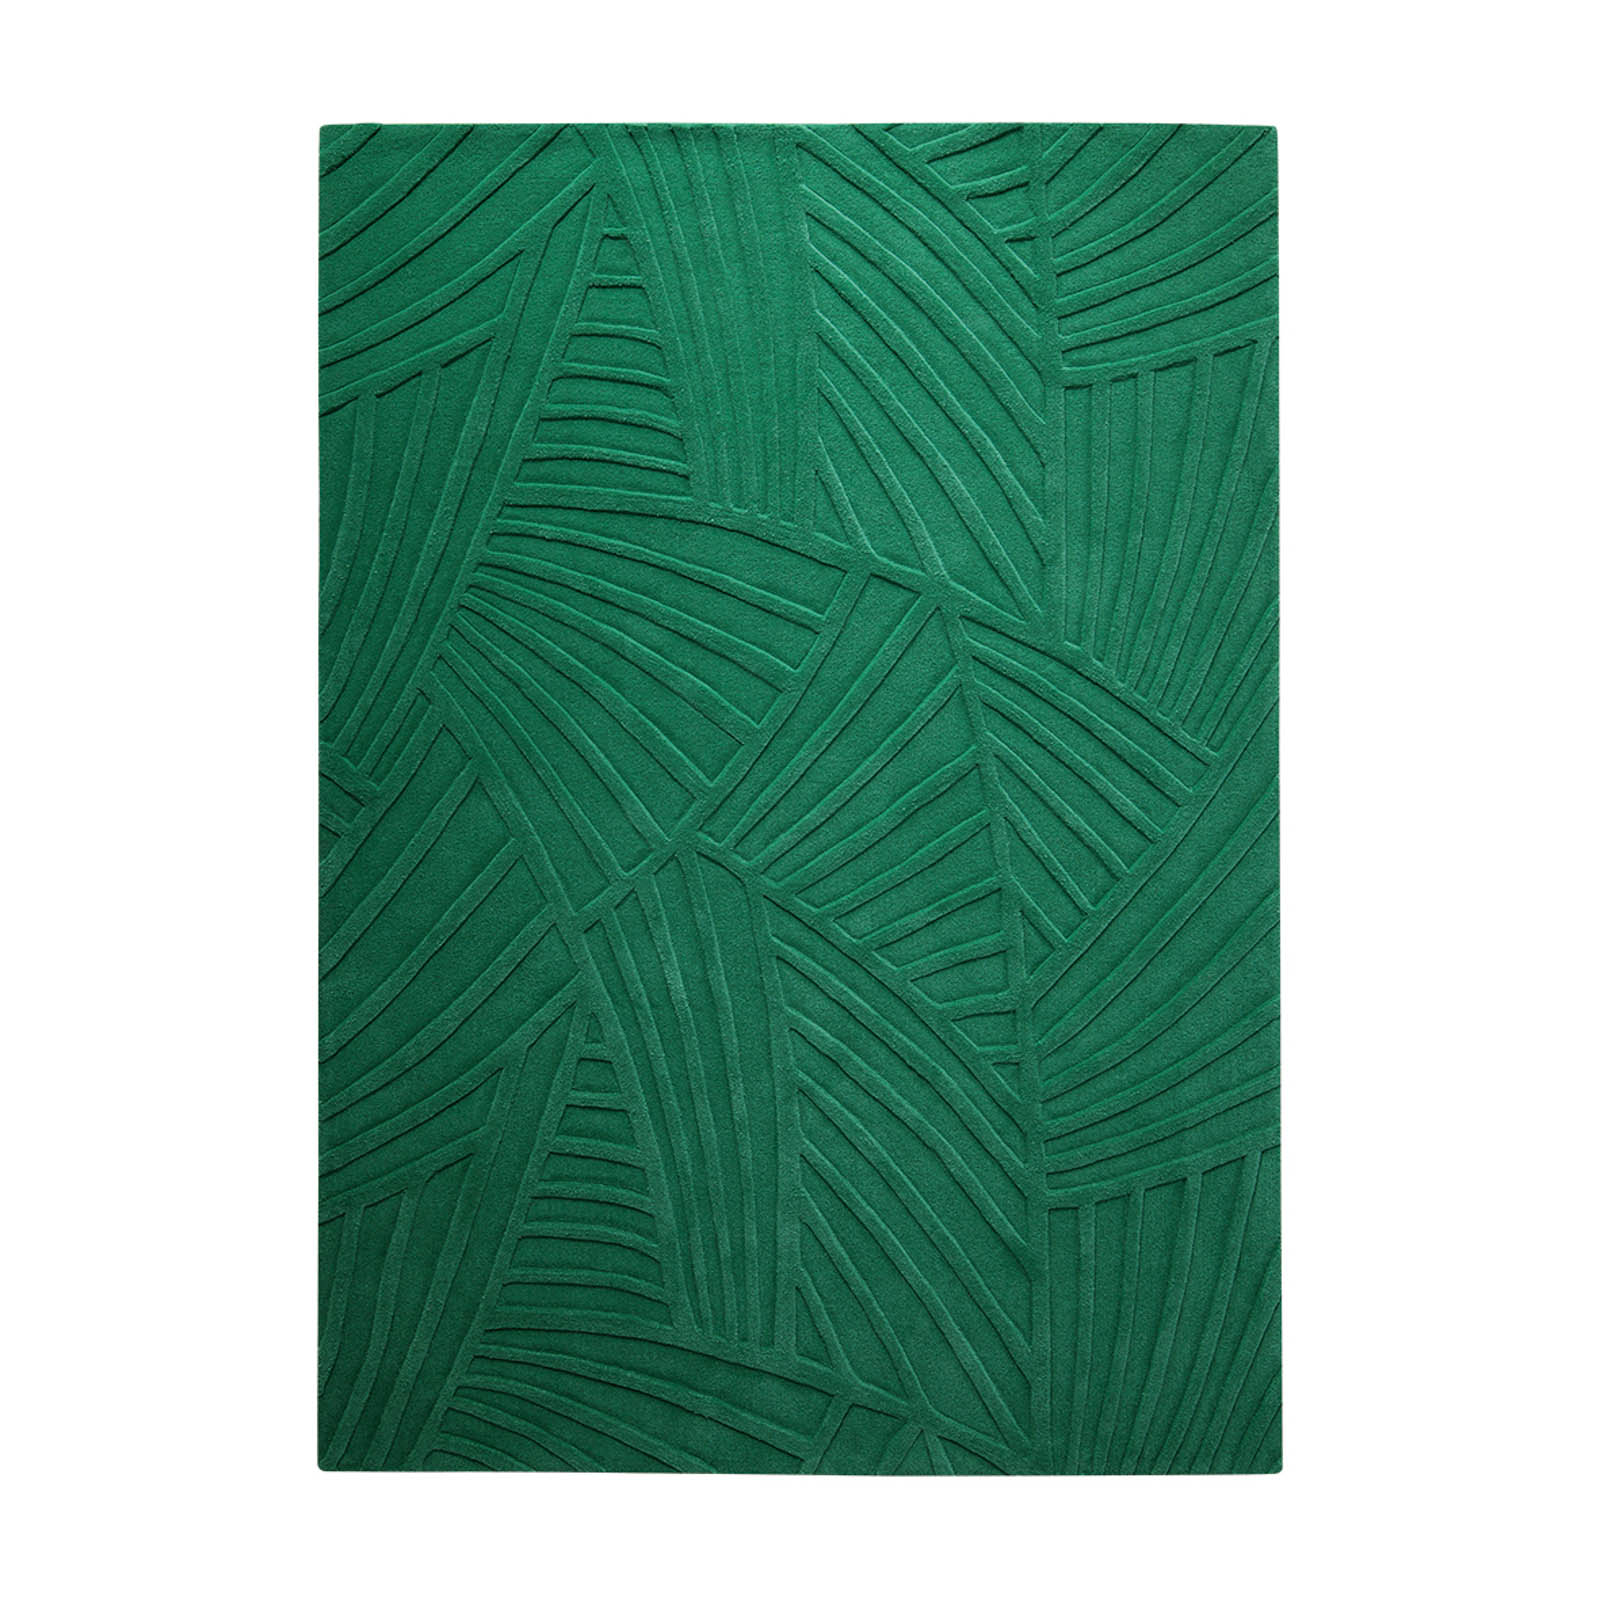 Palmia Rugs 4003 01 in Green by Esprit